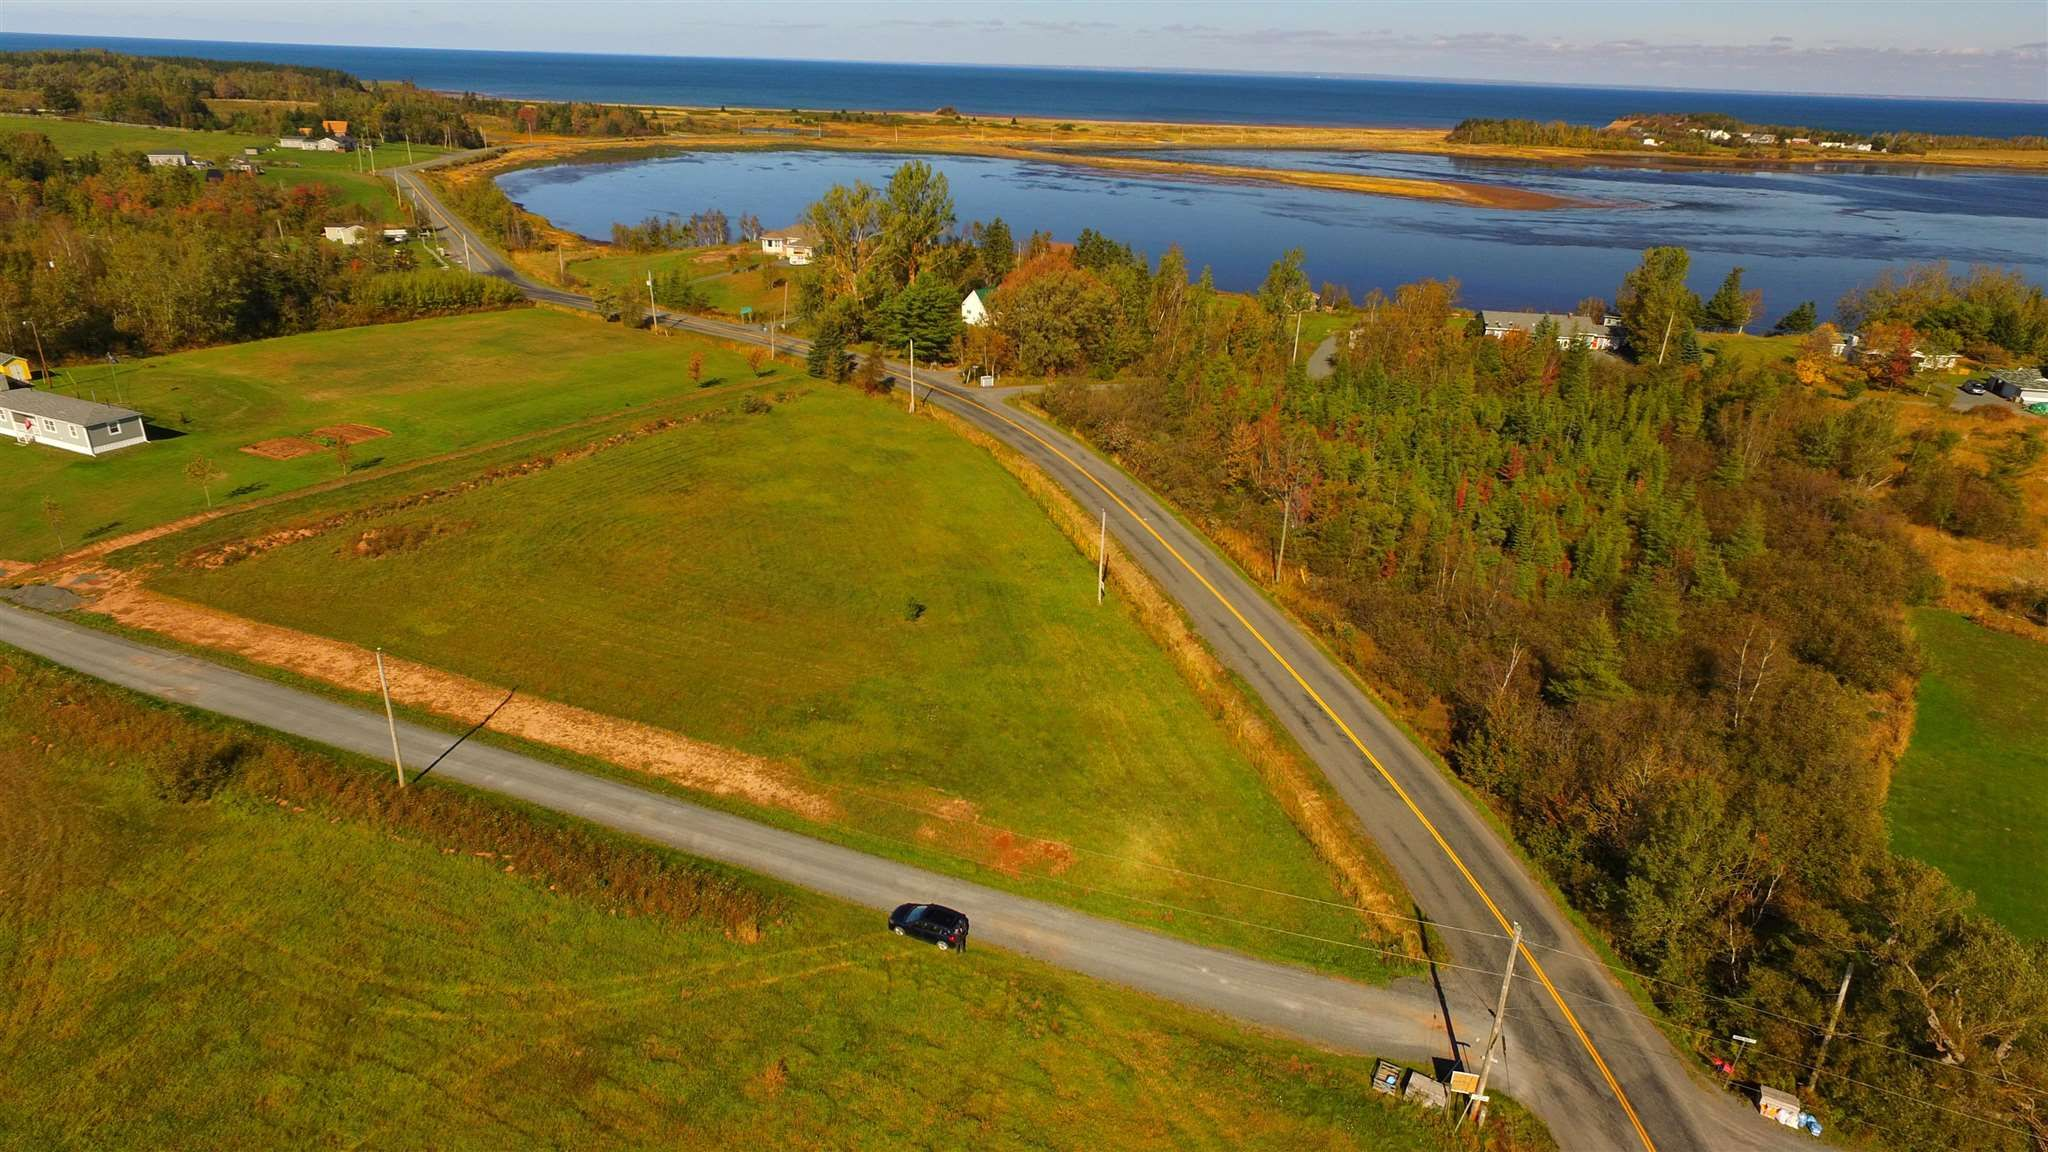 Main Photo: Lot 18-1 Shore Road in Waterside: 108-Rural Pictou County Vacant Land for sale (Northern Region)  : MLS®# 202114846